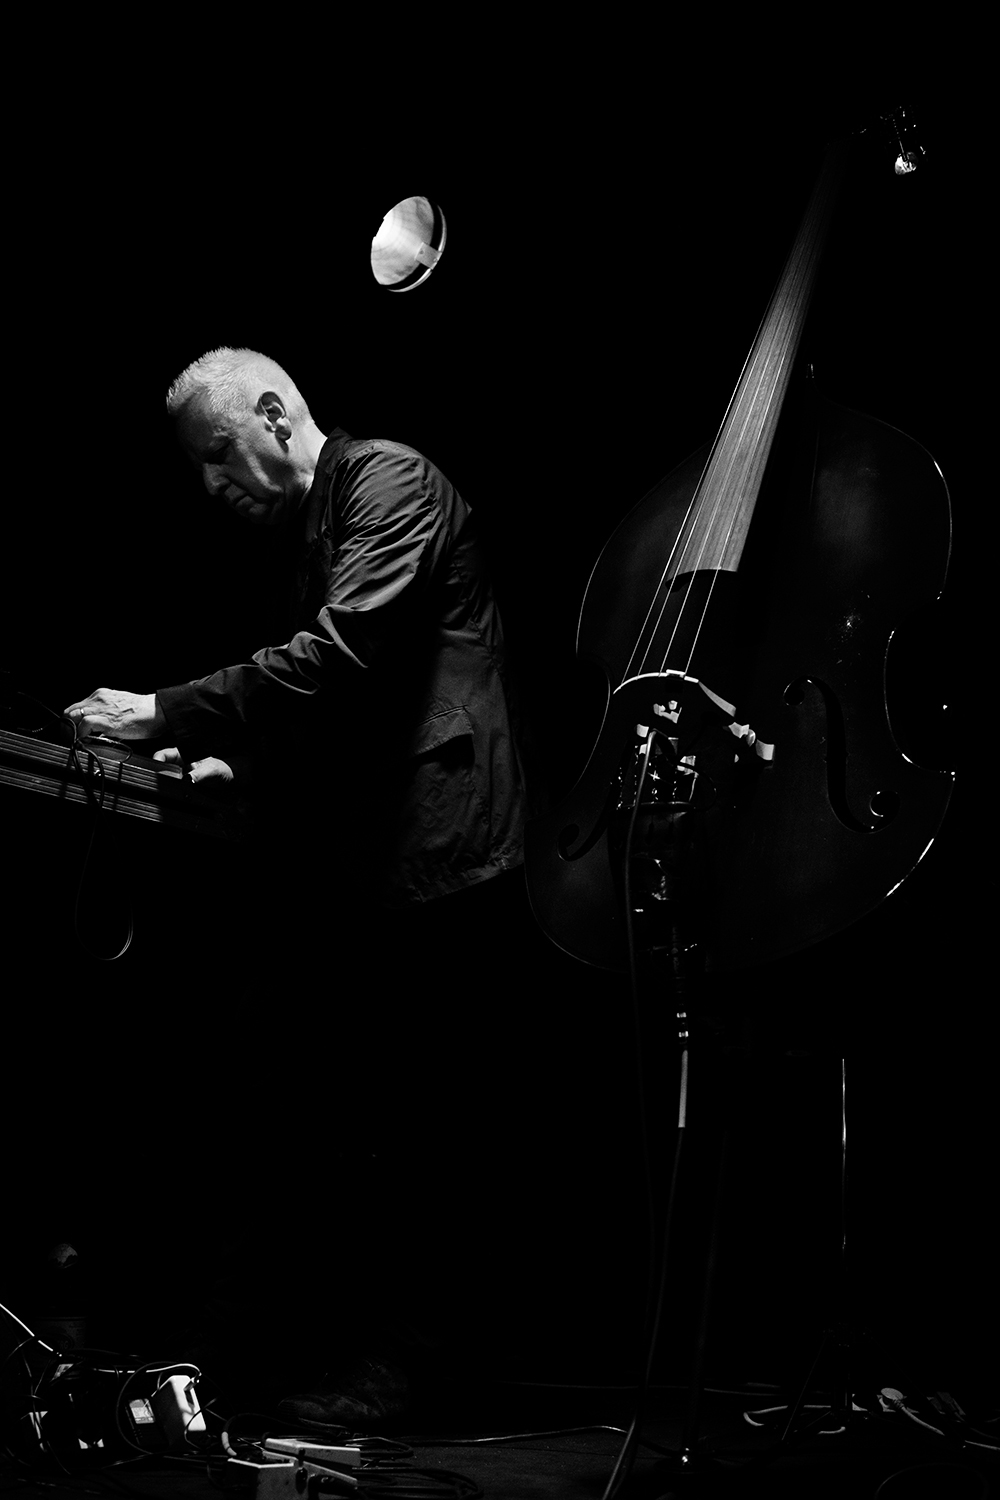 Arnold Dreyblatt & The Orchestra of Excited Strings by Laurent Orseau - Les Ateliers Claus - Brussels, Belgium #6